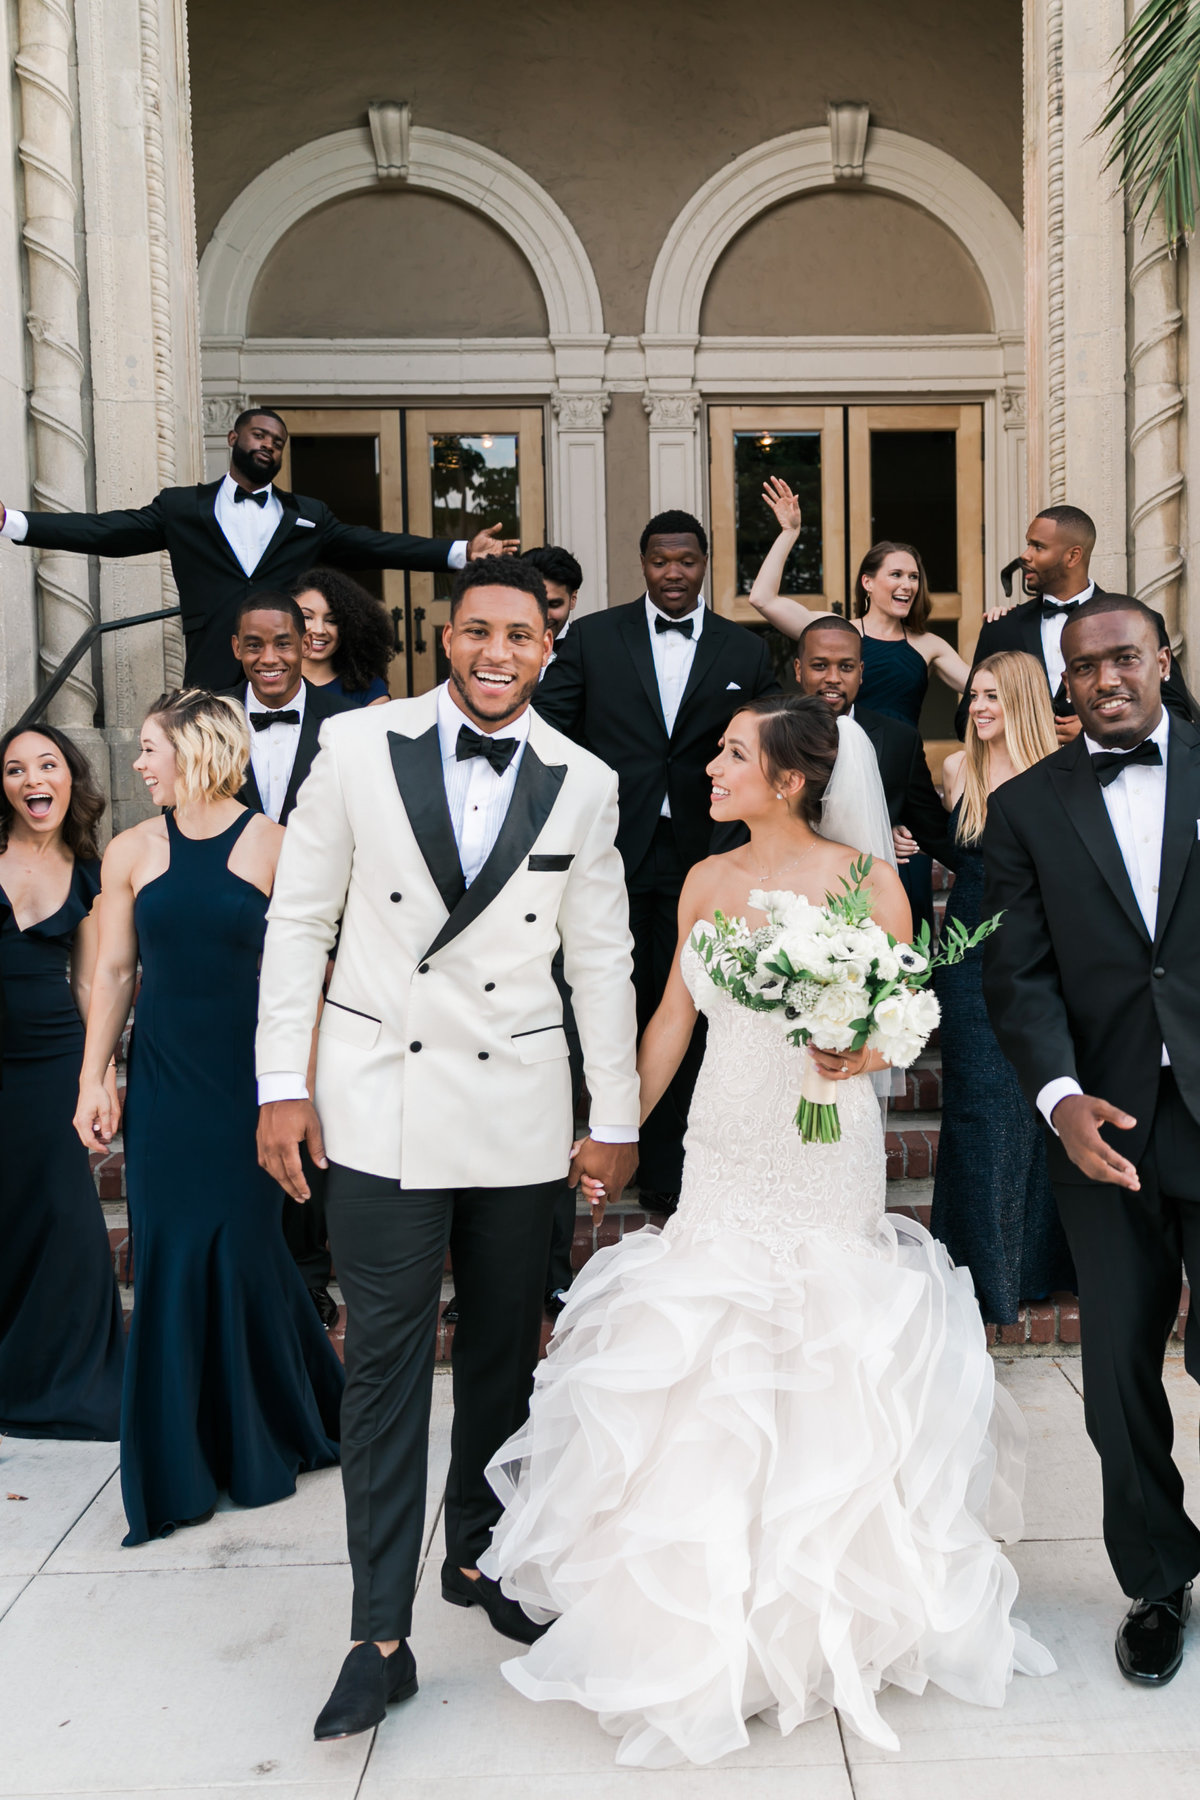 Ebell_Los_Angeles_Malcolm_Smith_NFL_Navy_Brass_Wedding_Valorie_Darling_Photography - 88 of 122